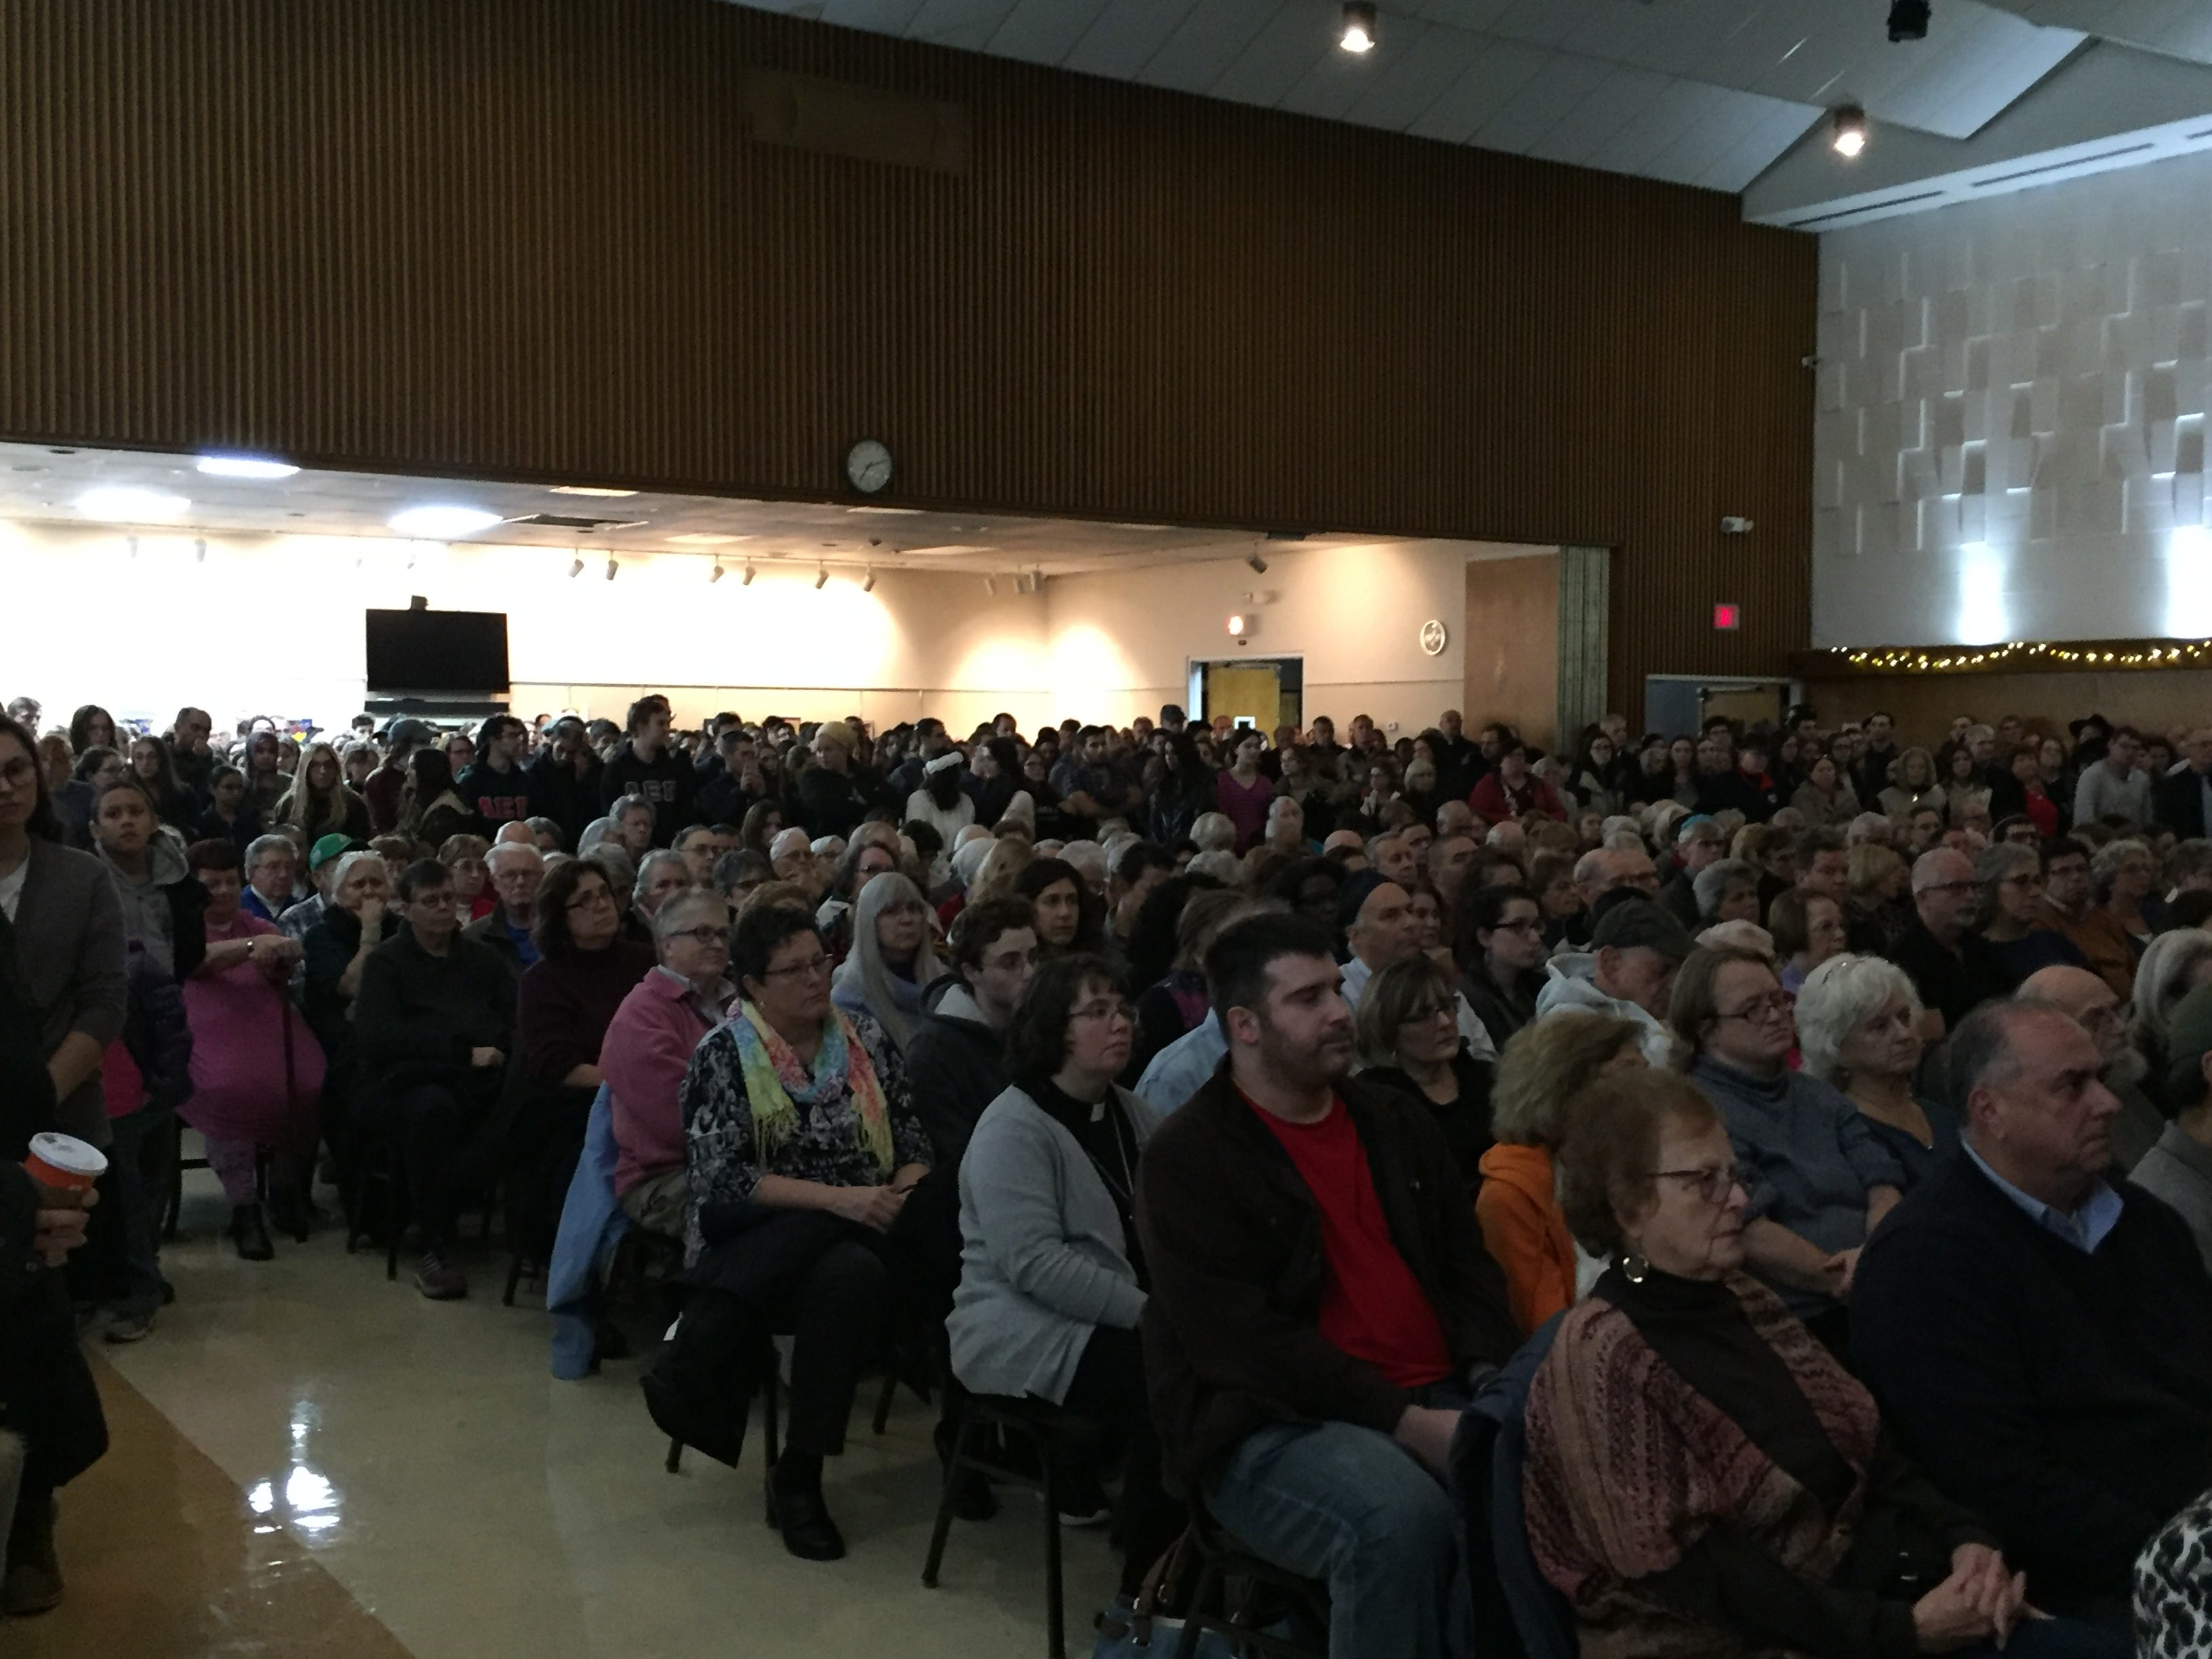 At least 750 people attended a vigil at the Jewish Community Center of Binghamton Monday following the shooting at theTree of Life CongregationSynagogue in Pittsburgh.